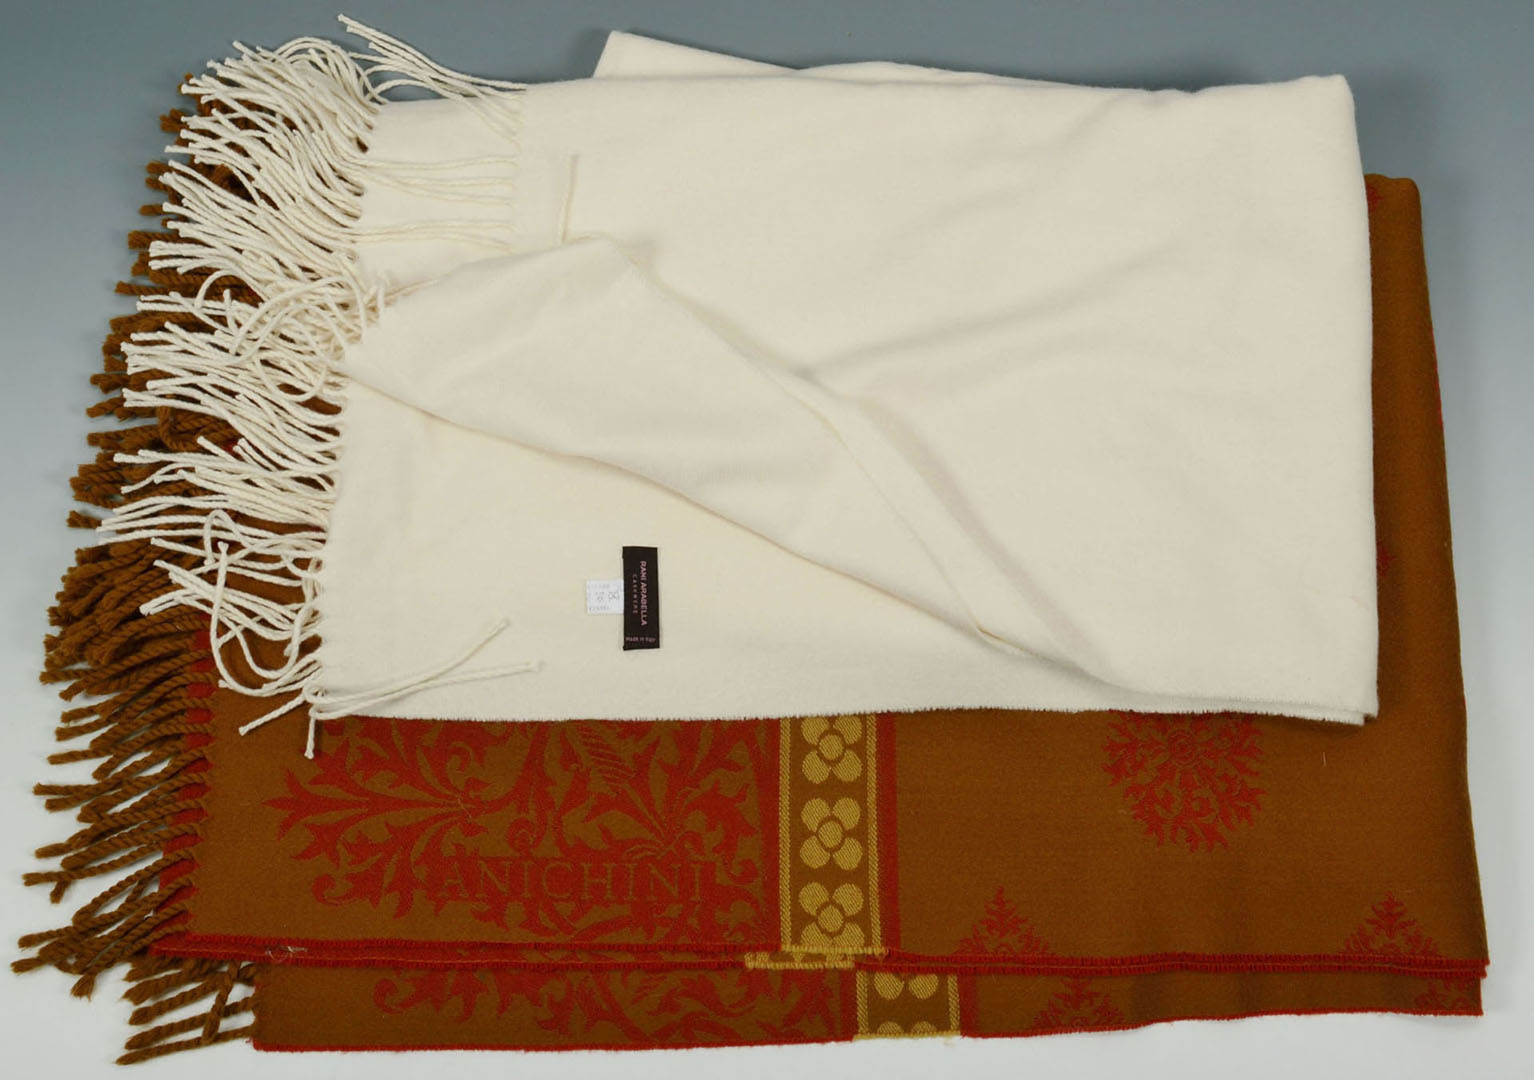 Lot 2872357: Group of designer blankets, pillows and napkins